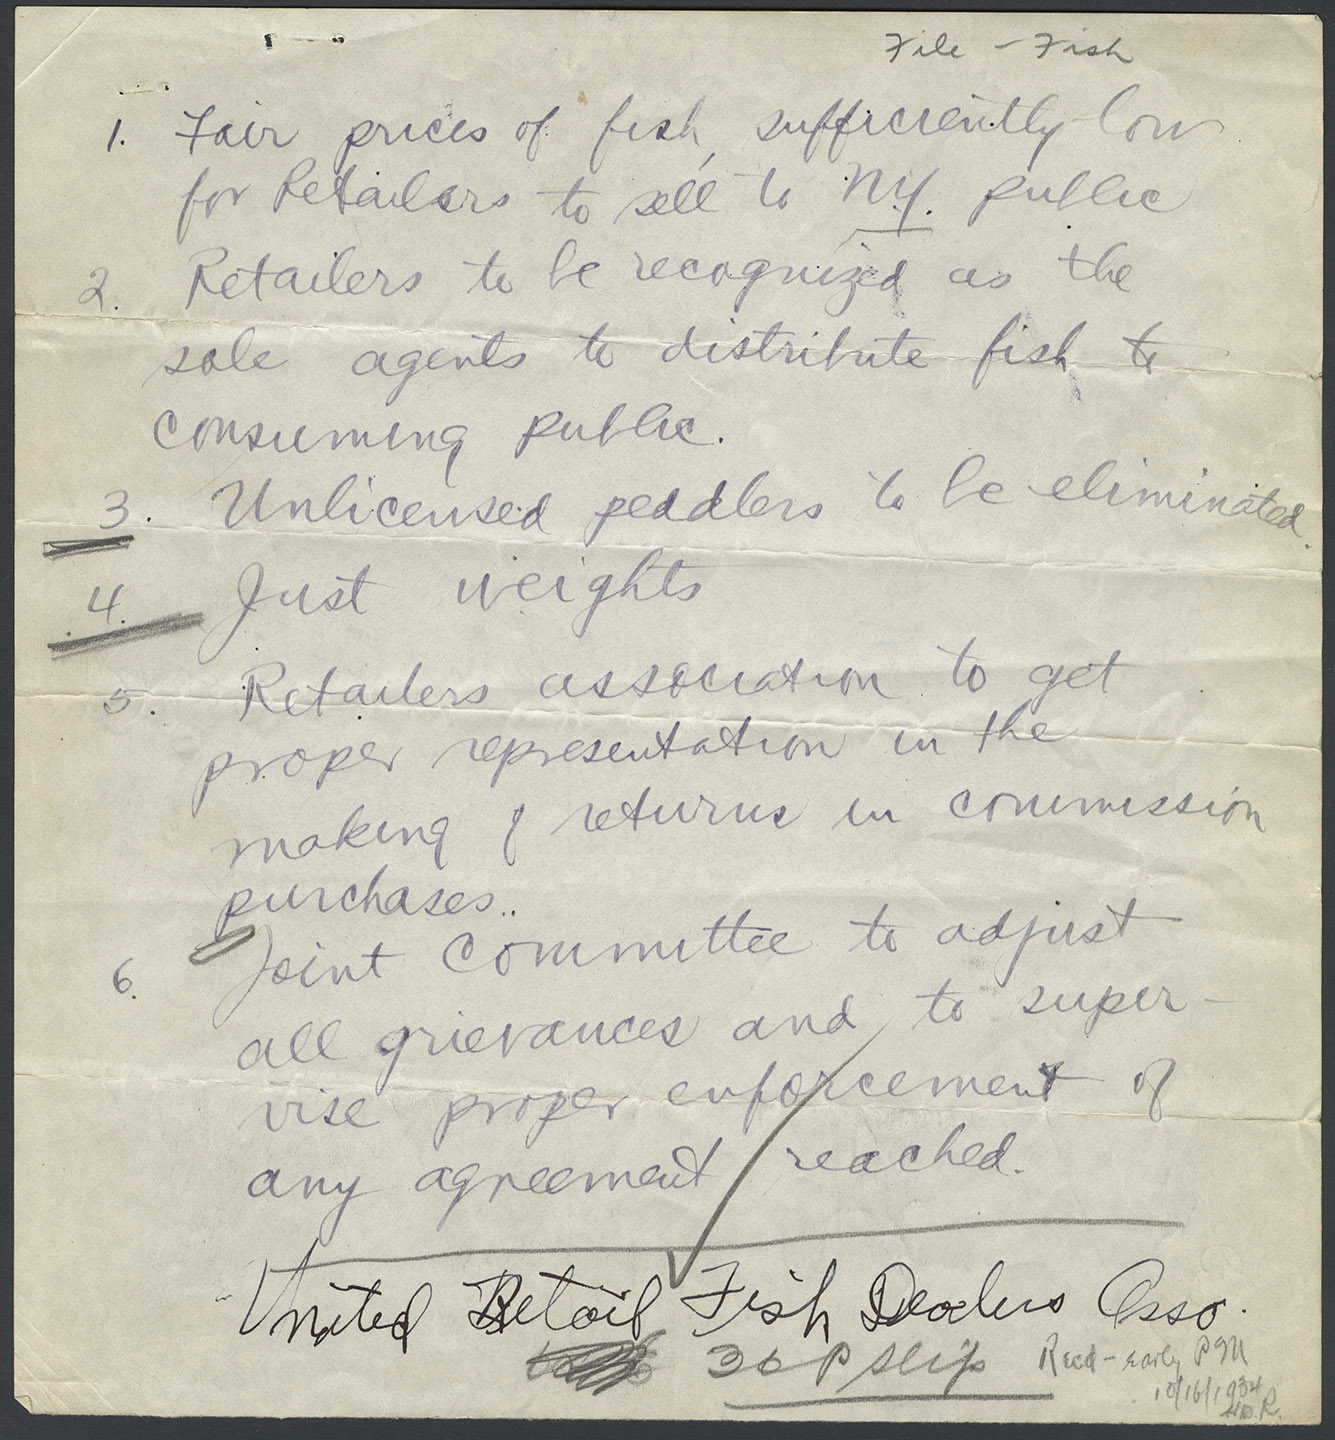 United Retail Fish Dealers Assoc. letter of demands, Oct. 16, 1934. Mayor LaGuardia Collection, NYC Municipal Archives.